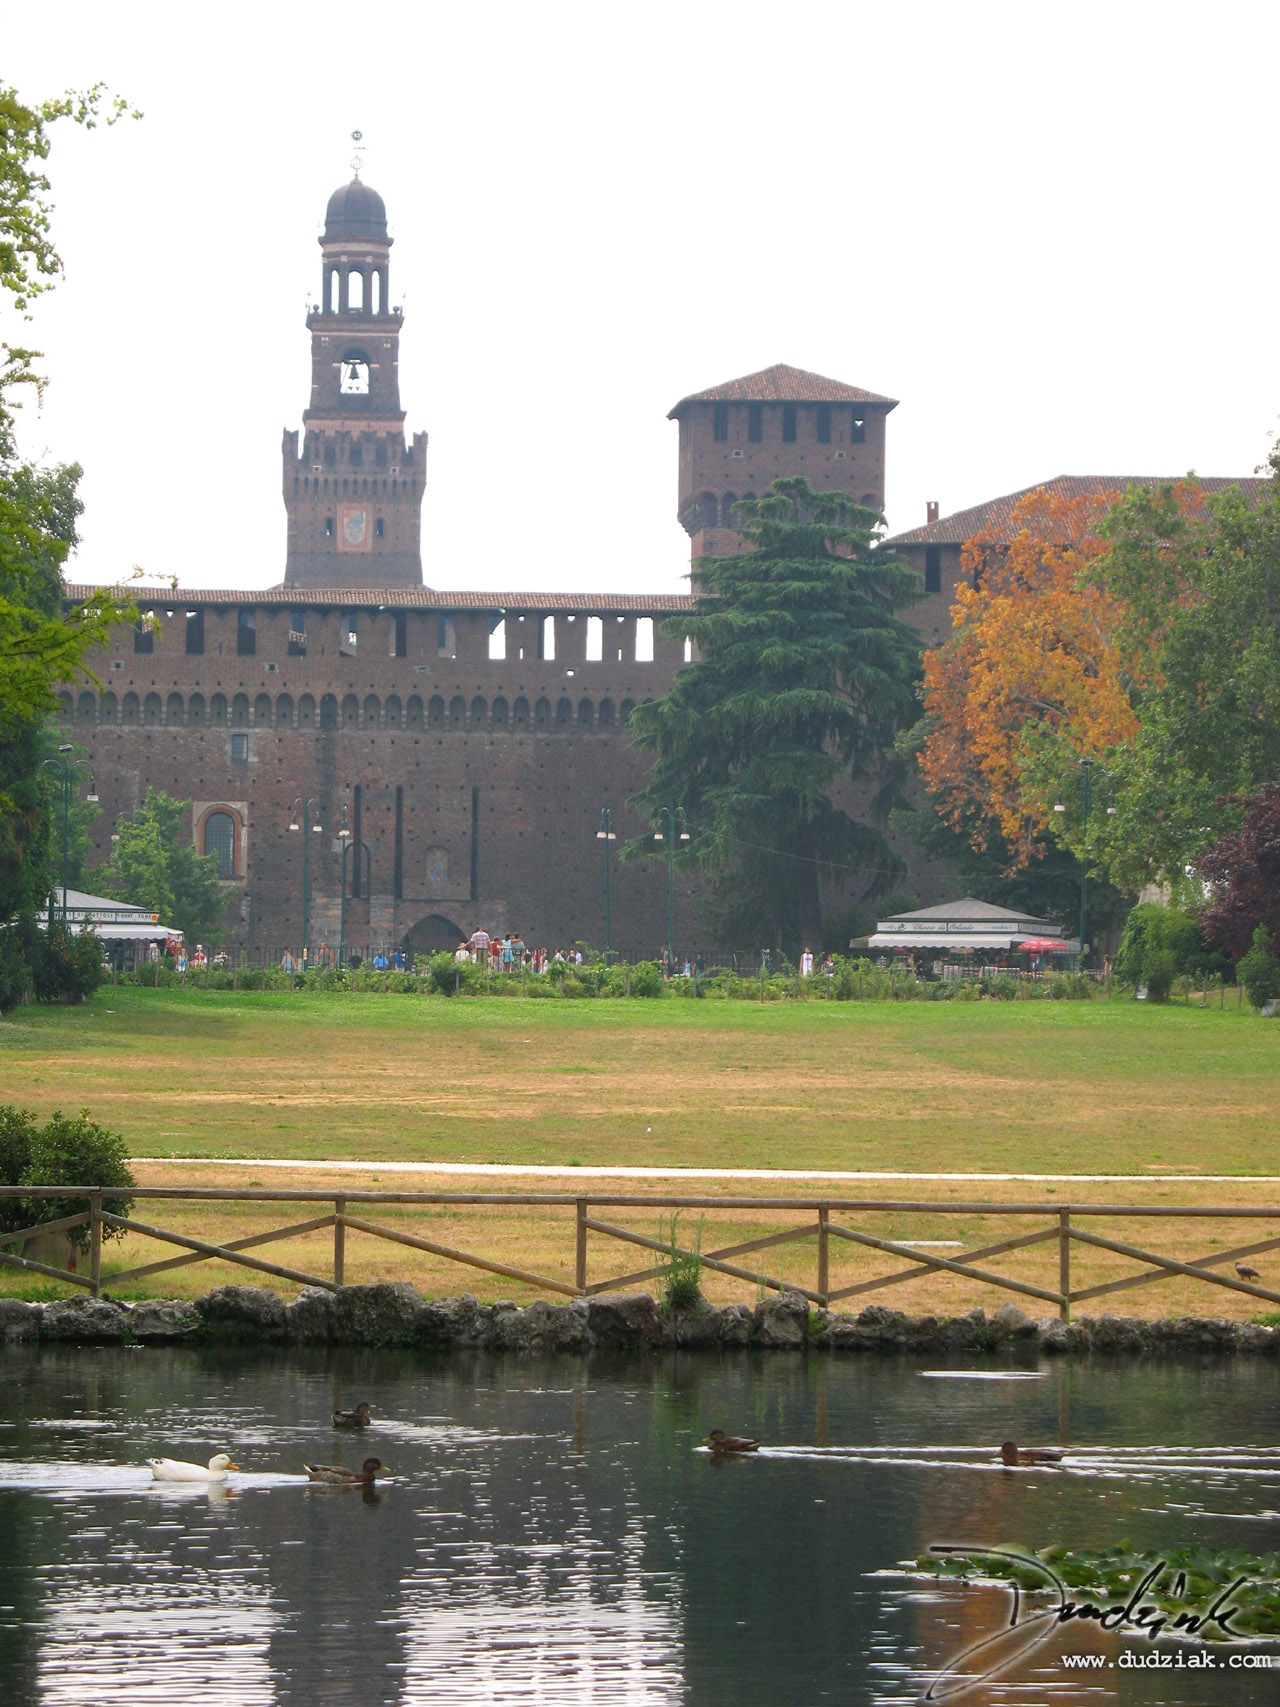 Picture of Castello Sforzesco (Sforzesco Castle) in Milan Italy.